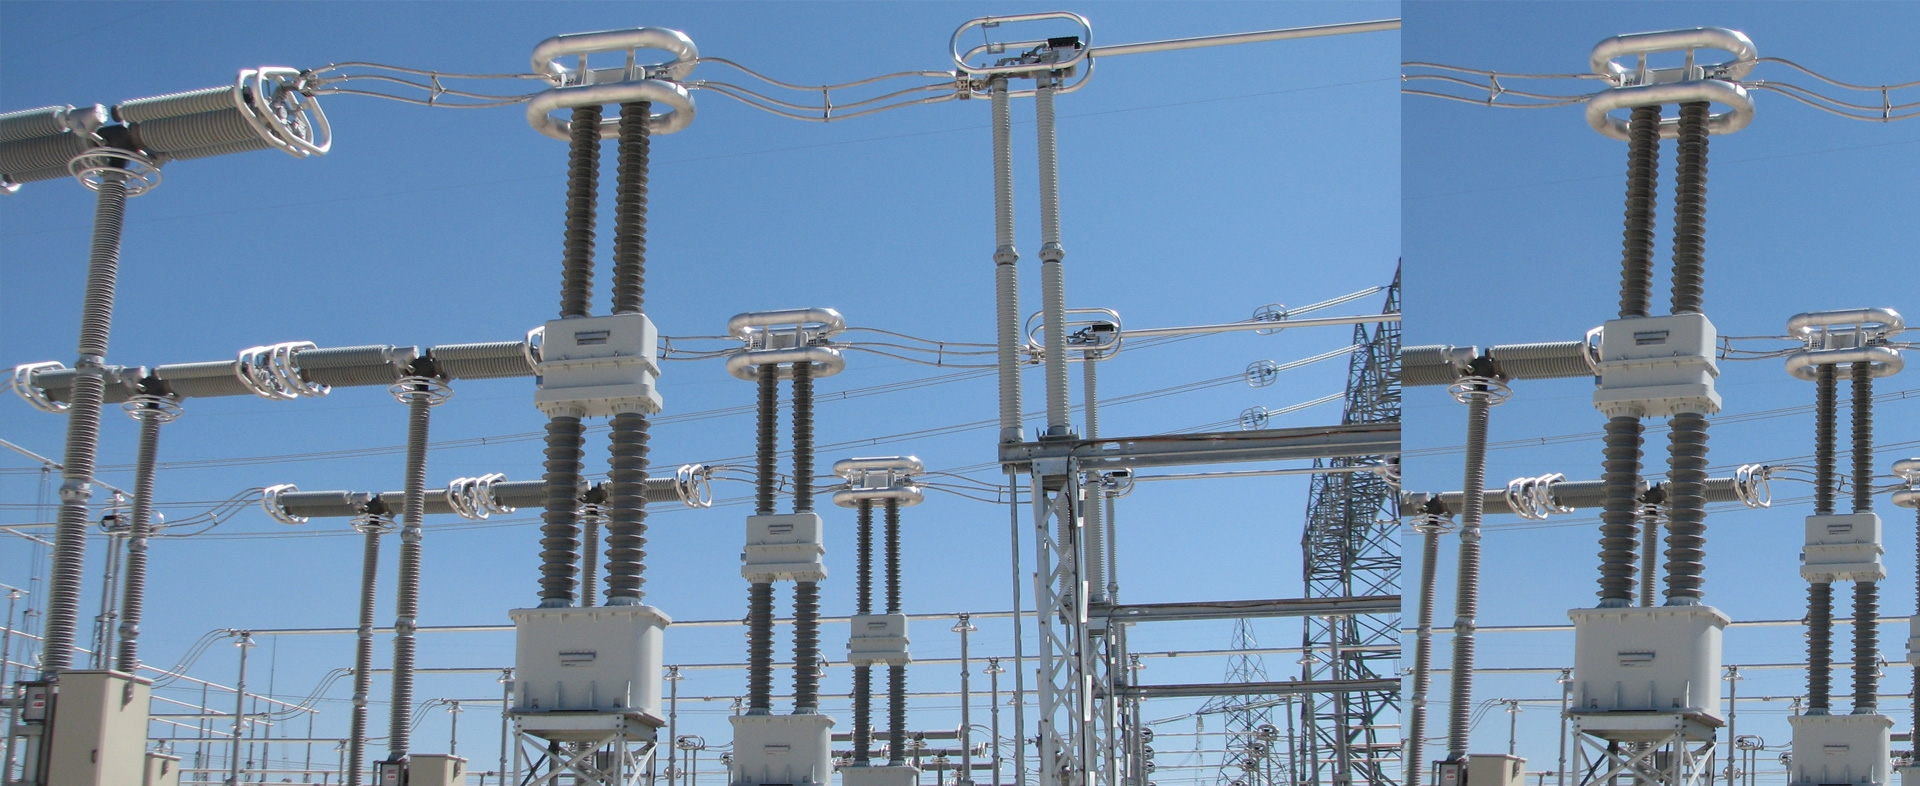 Innovative High Reliability High Voltage Equipment for the Power Grid